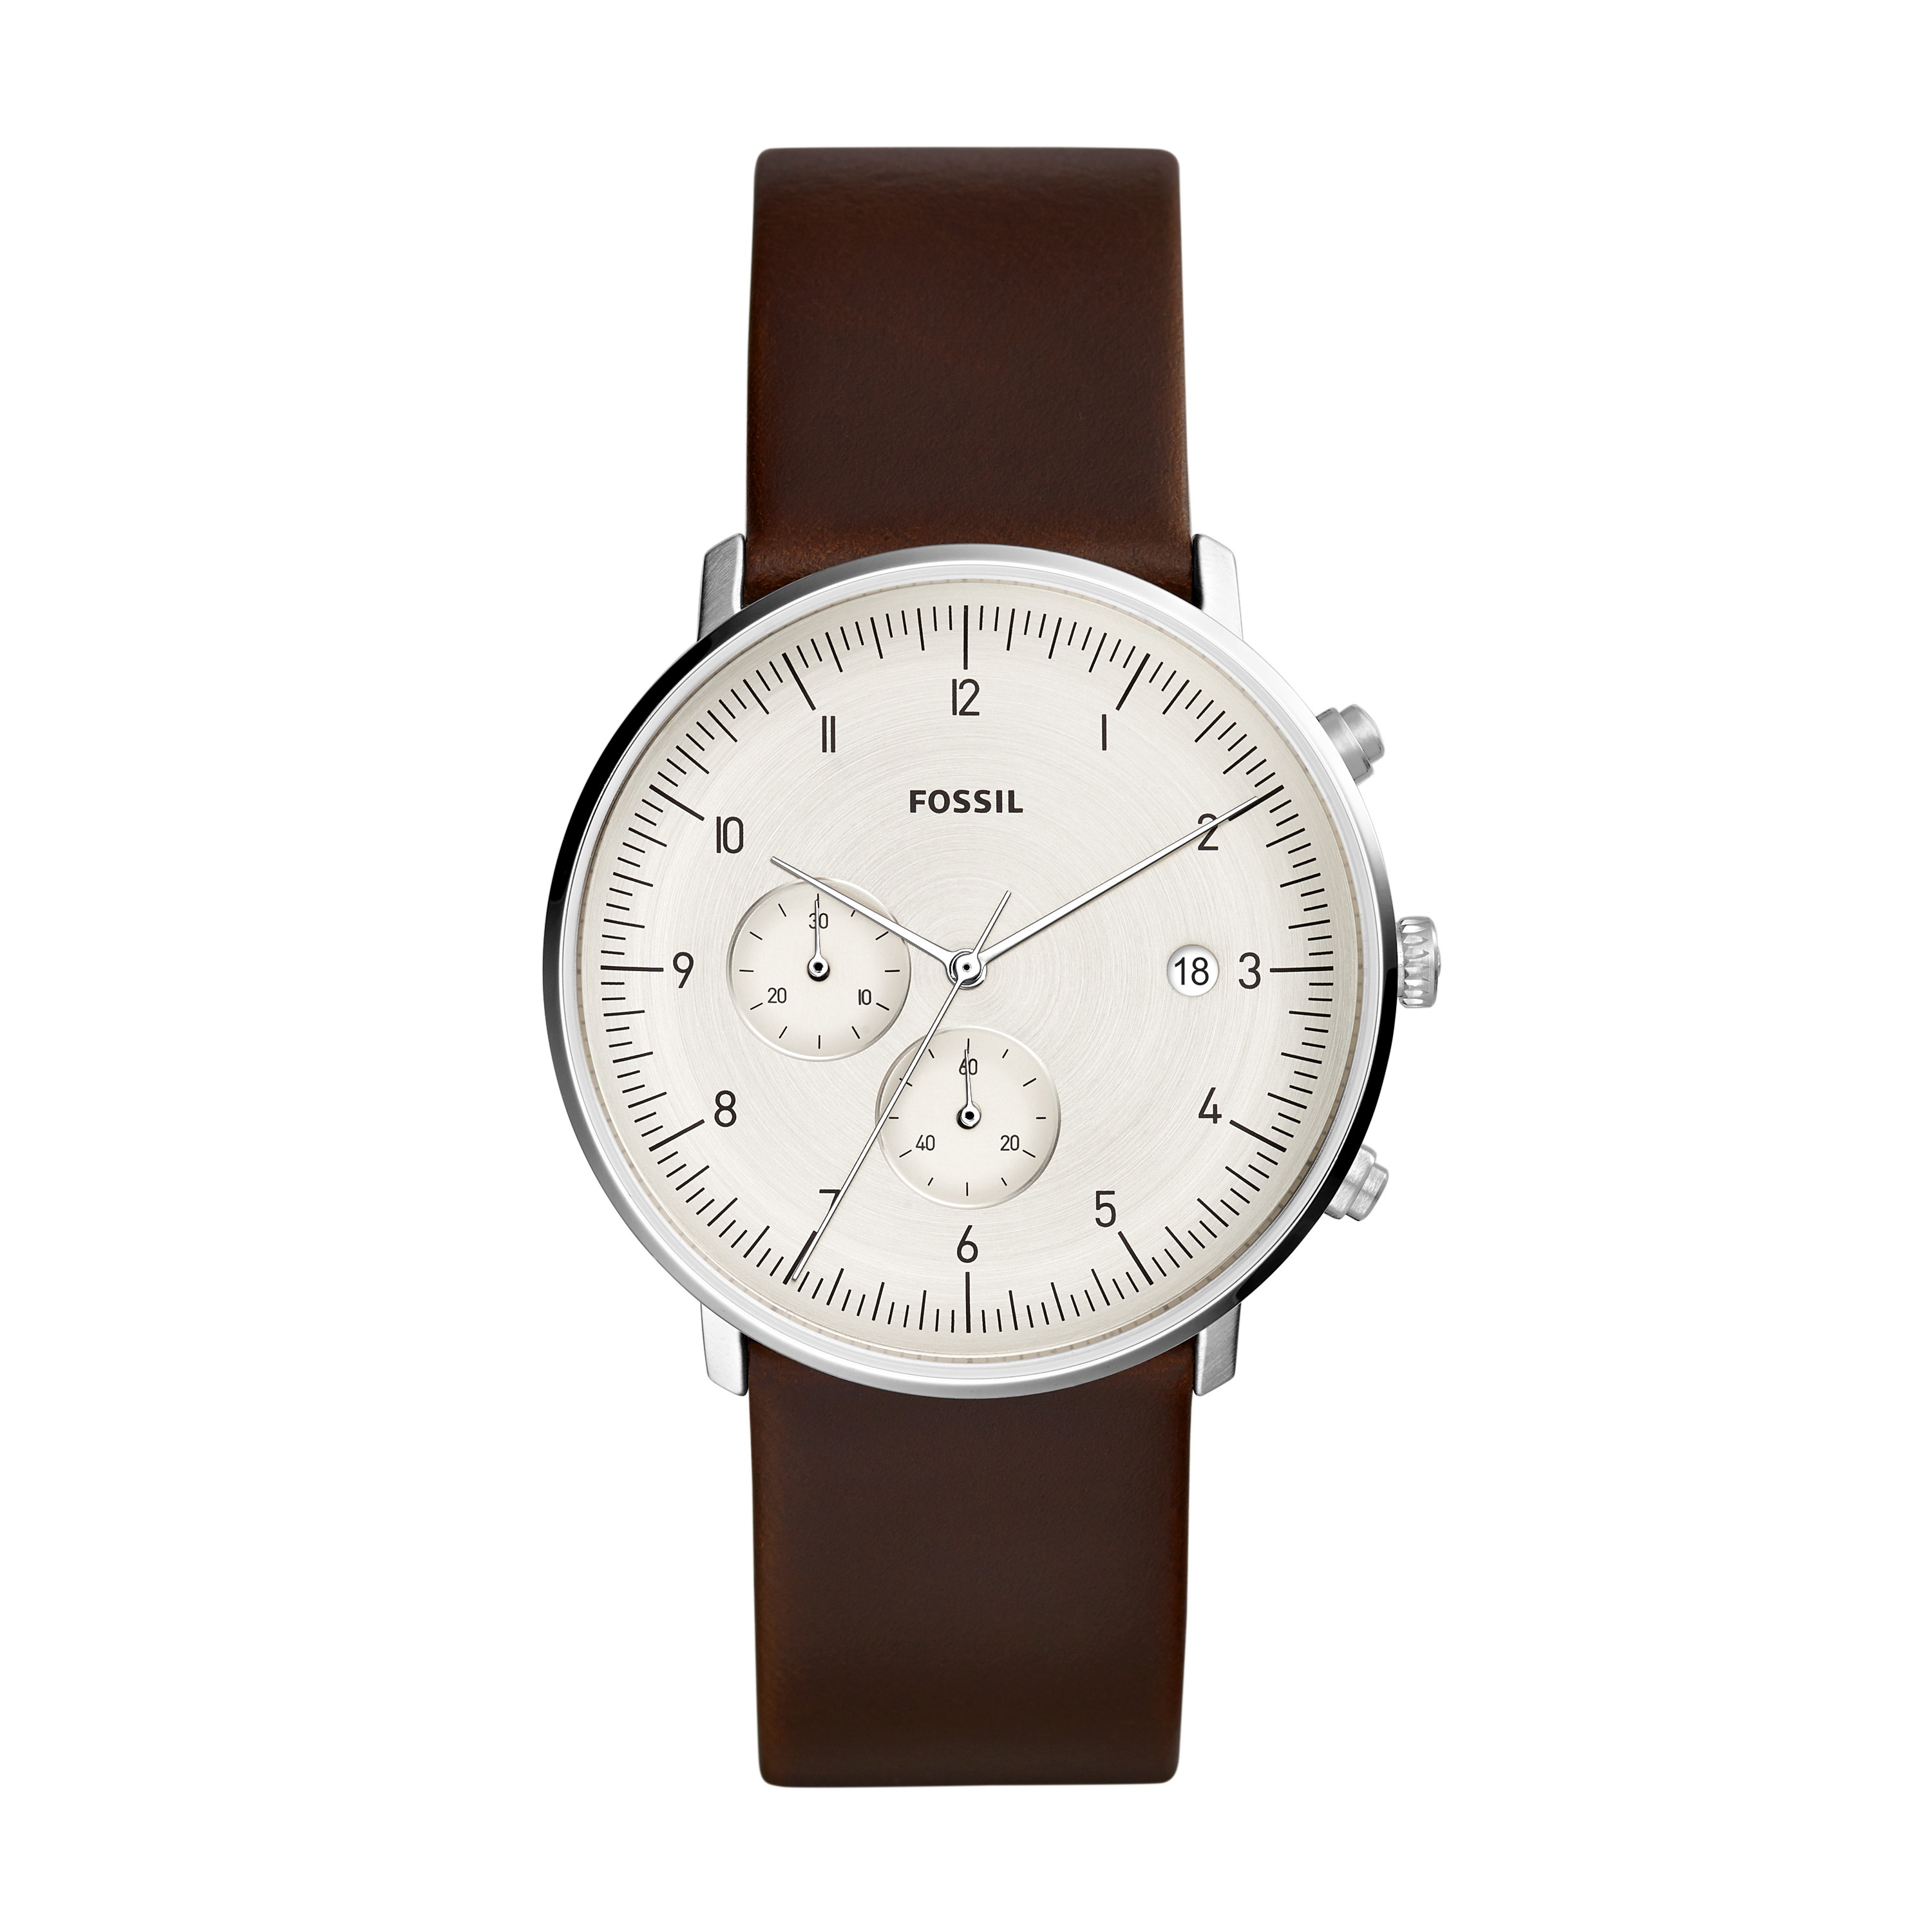 Ceas FOSSIL - Chase Timer FS5488 Brown/Silver